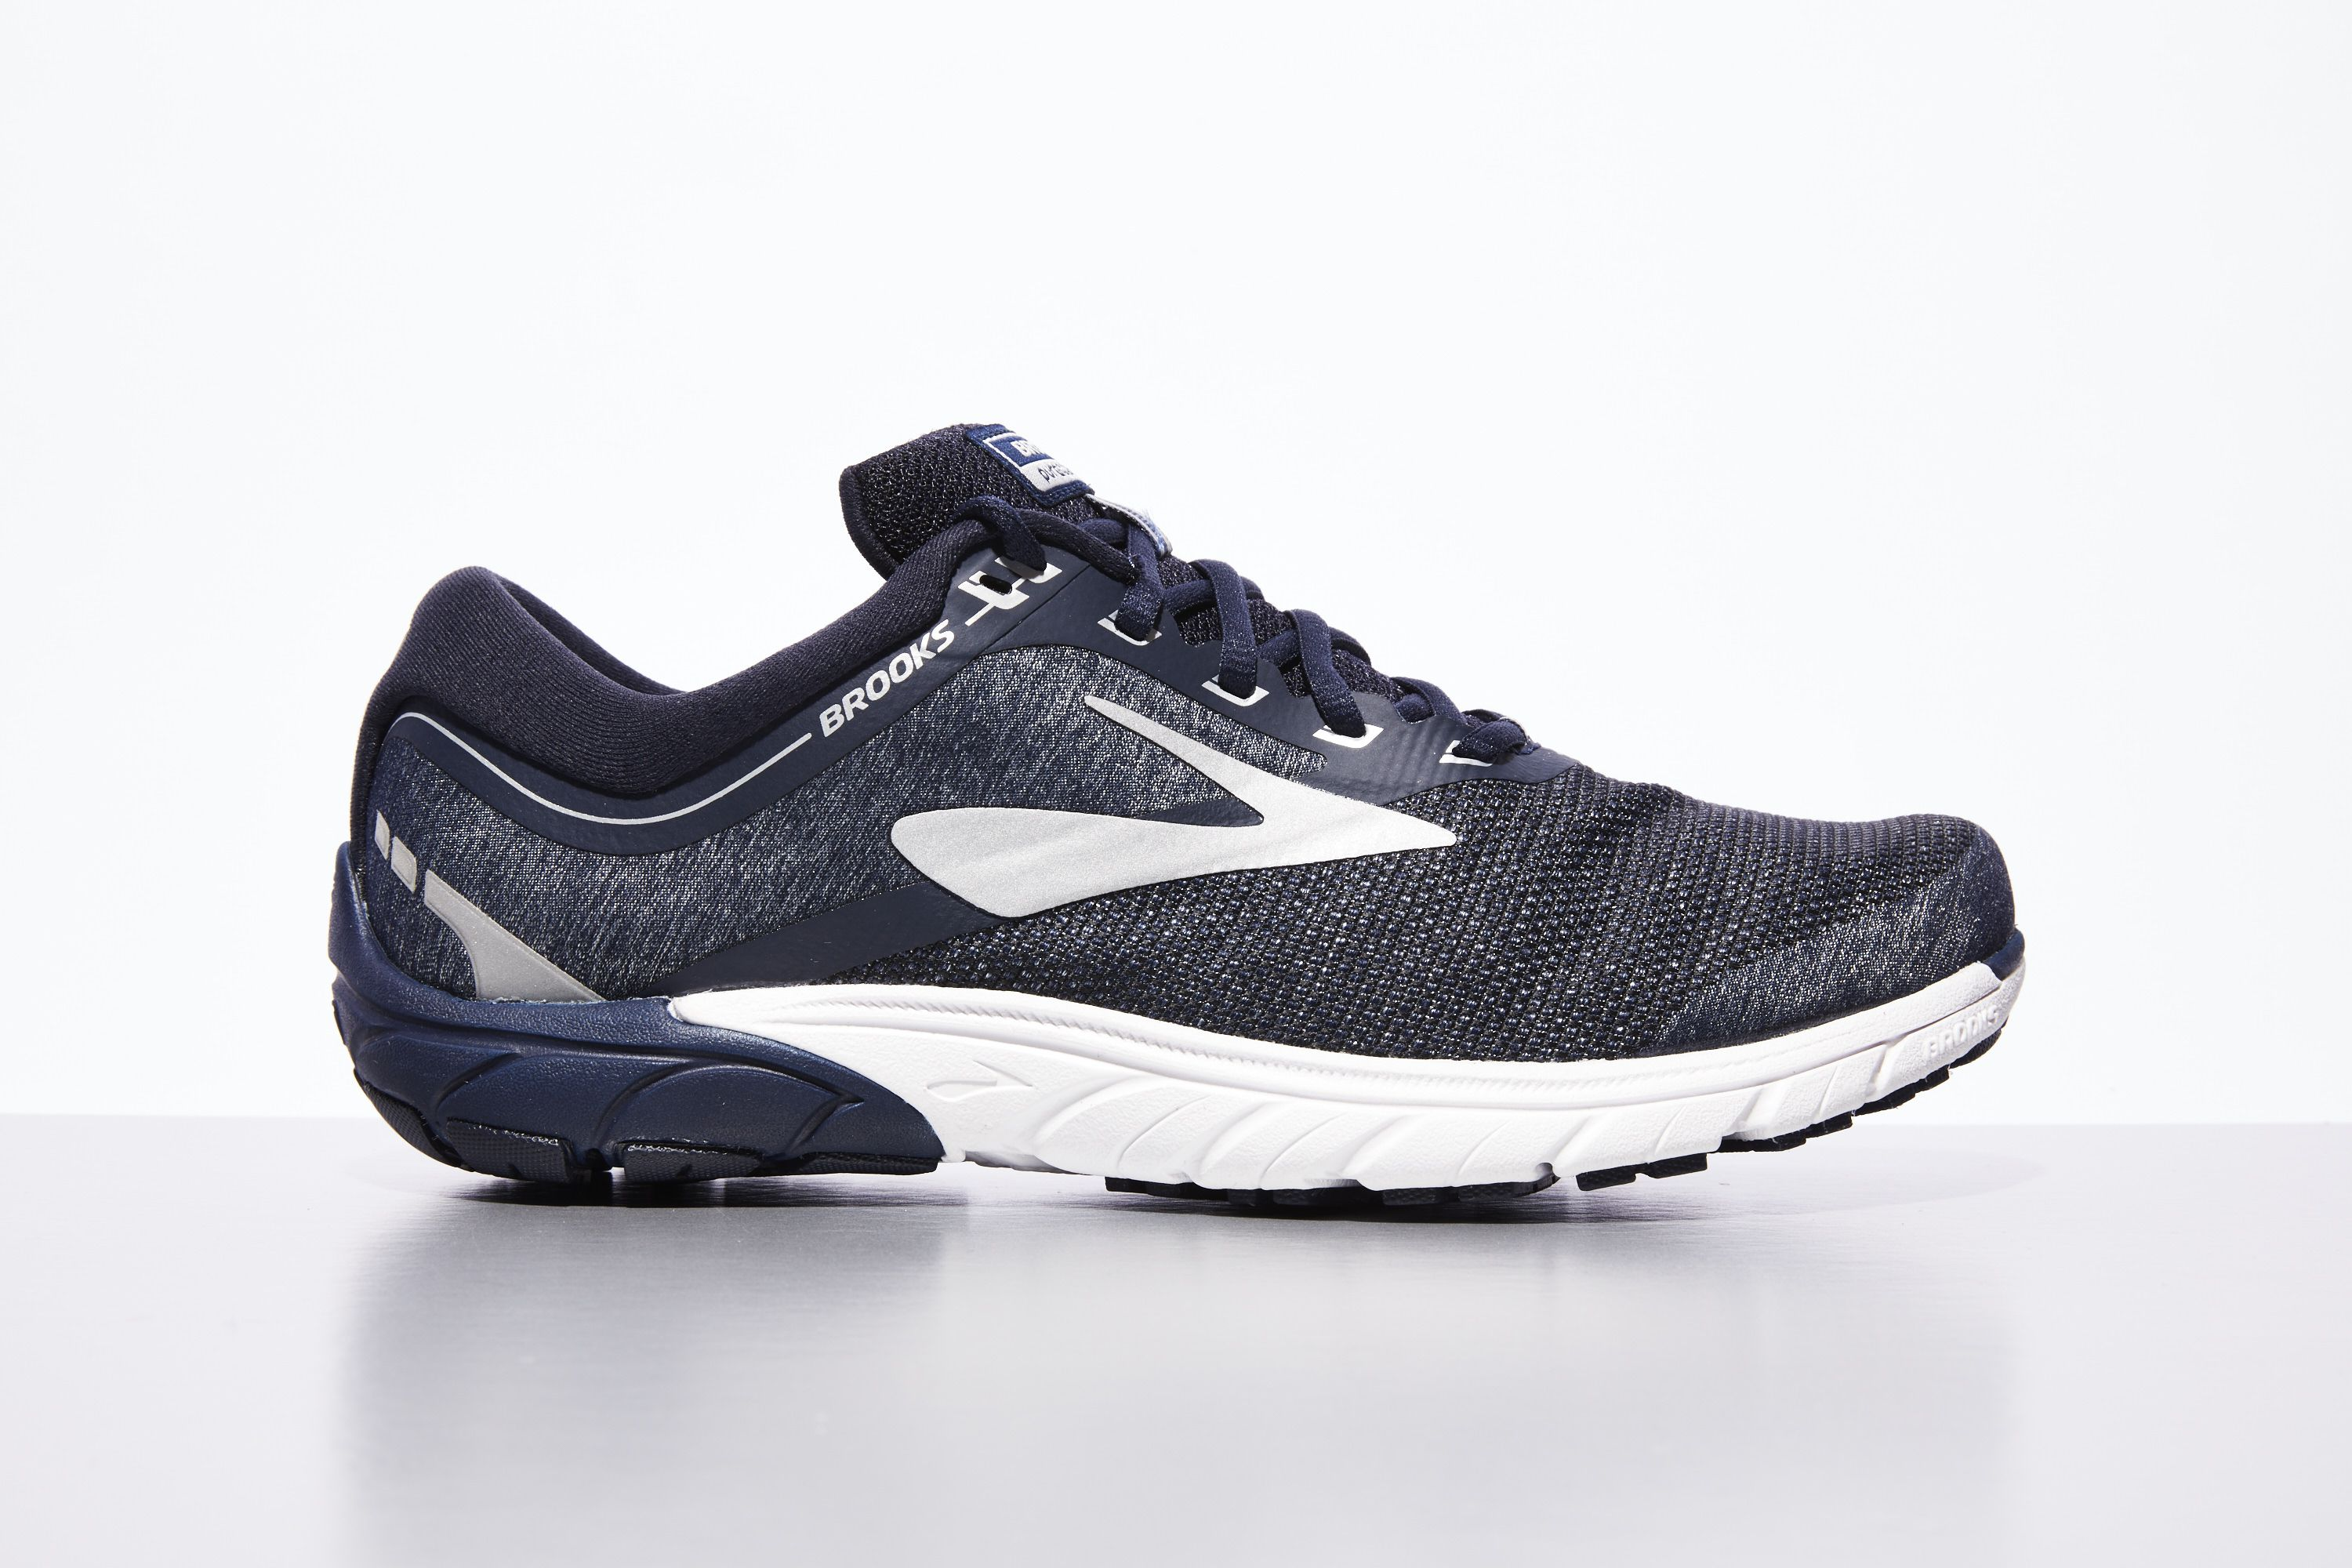 8230530059a Best Brooks Running Shoes